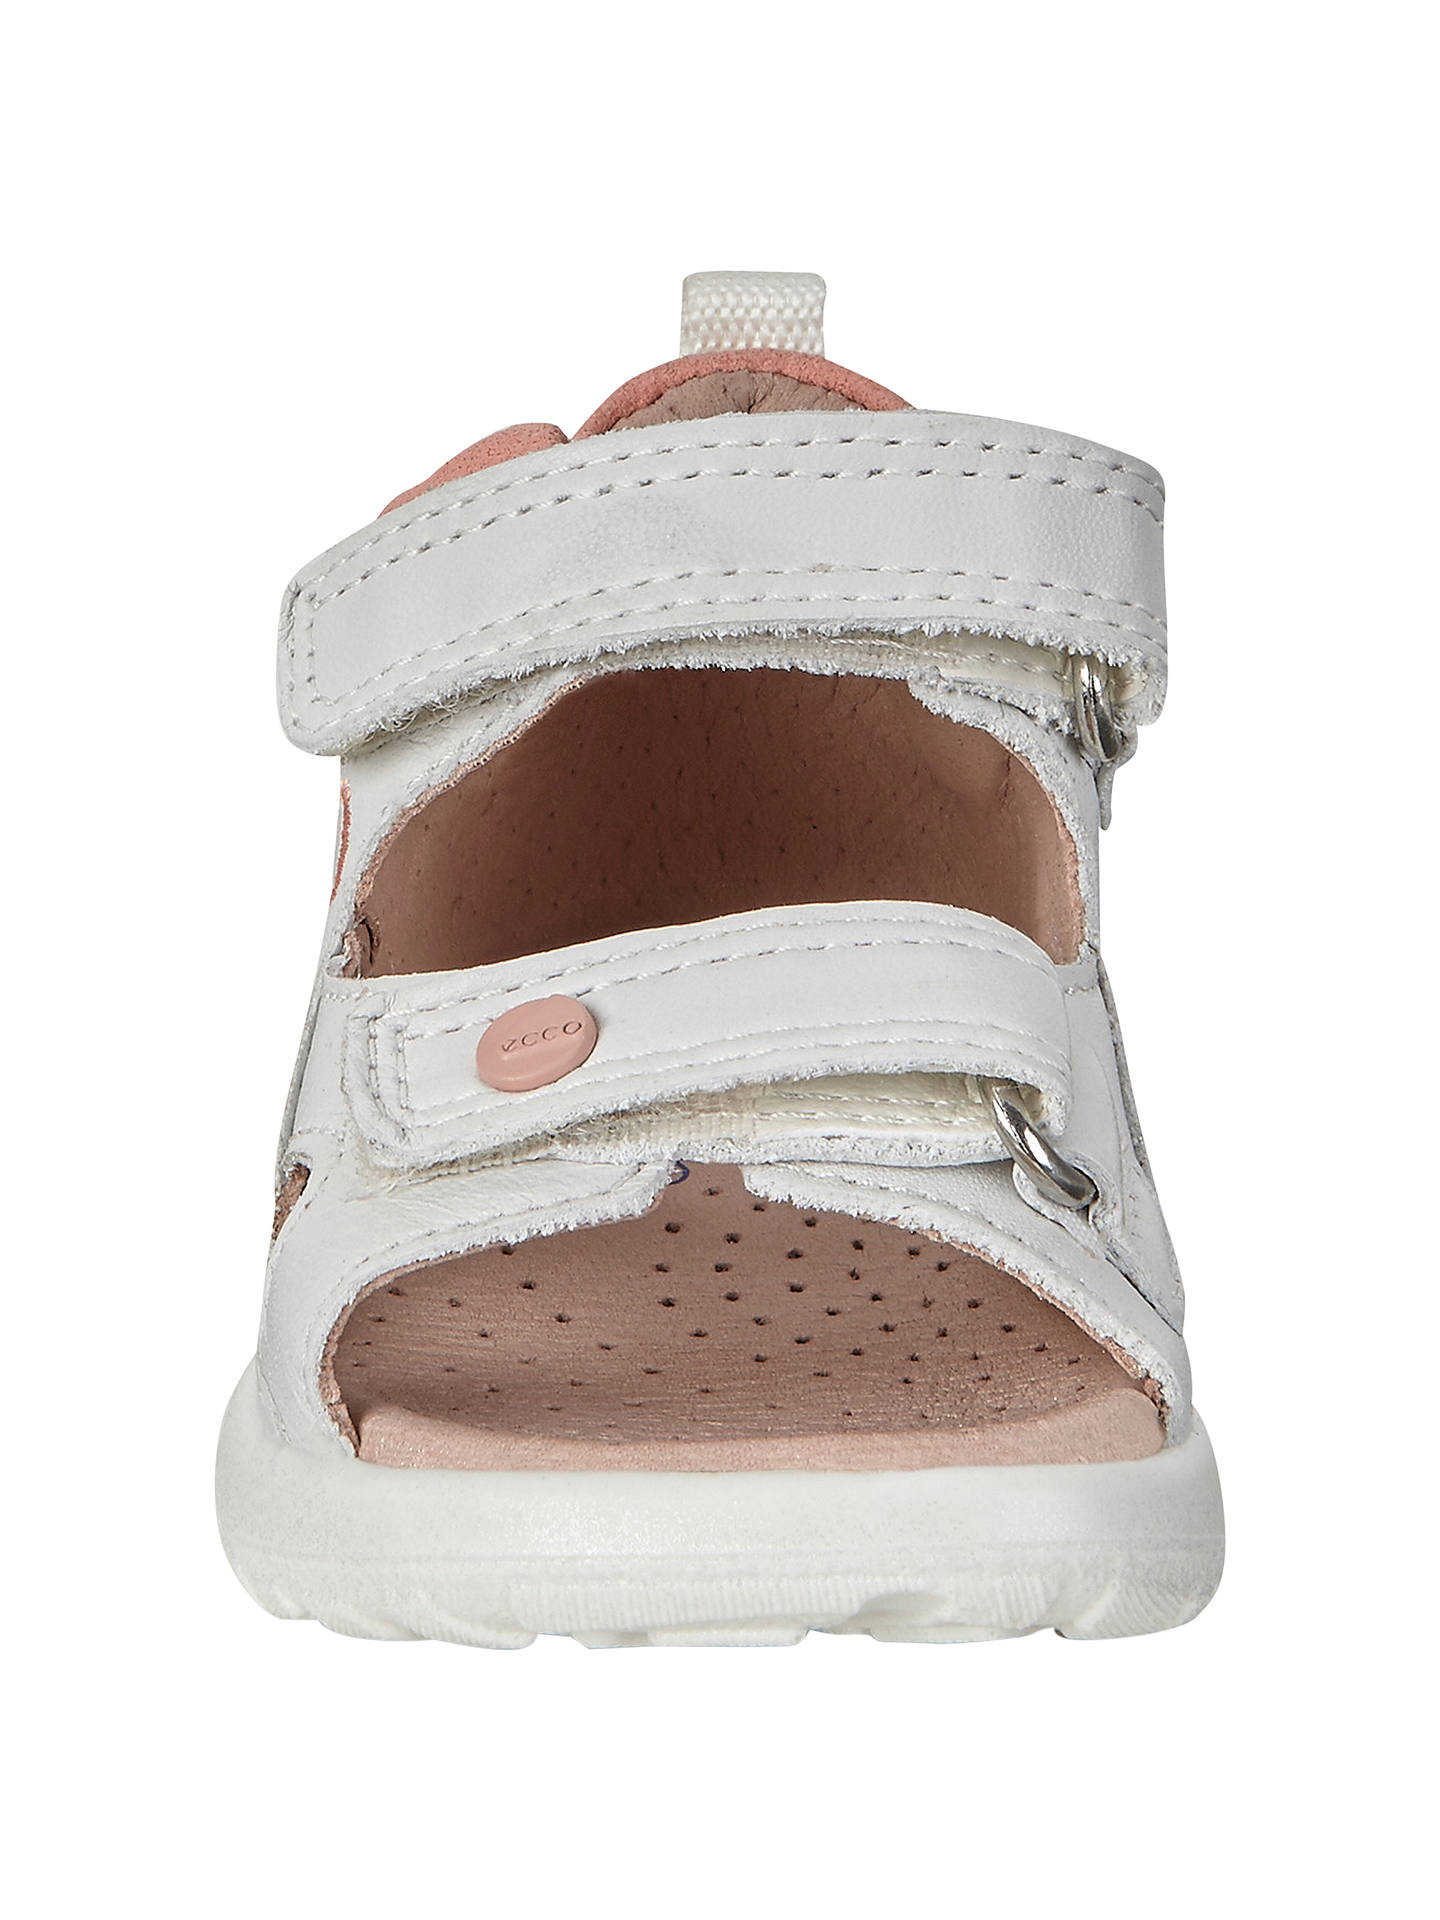 3d334f8ad02b5 ... Buy ECCO Peekaboo Leather Sandals, White/Pink, 20 Online at  johnlewis.com ...